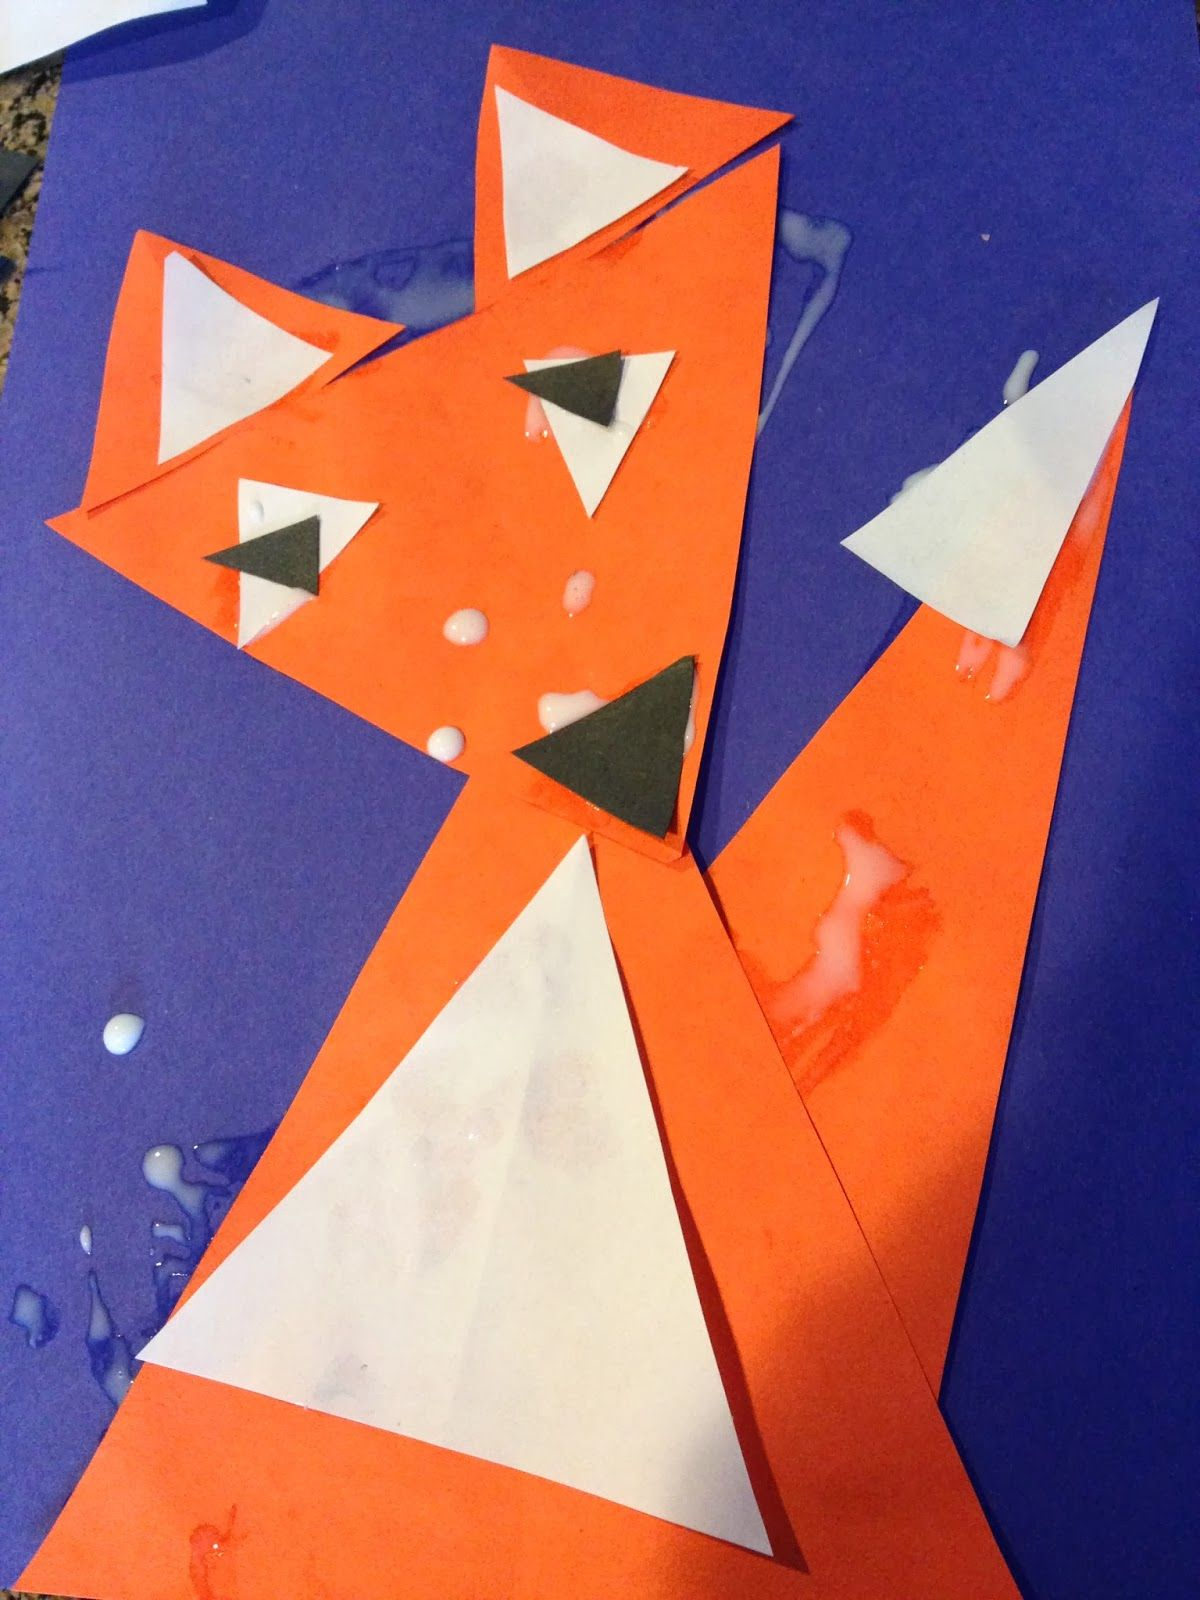 The Backup Learning Shapes With Triangle Fox Craft